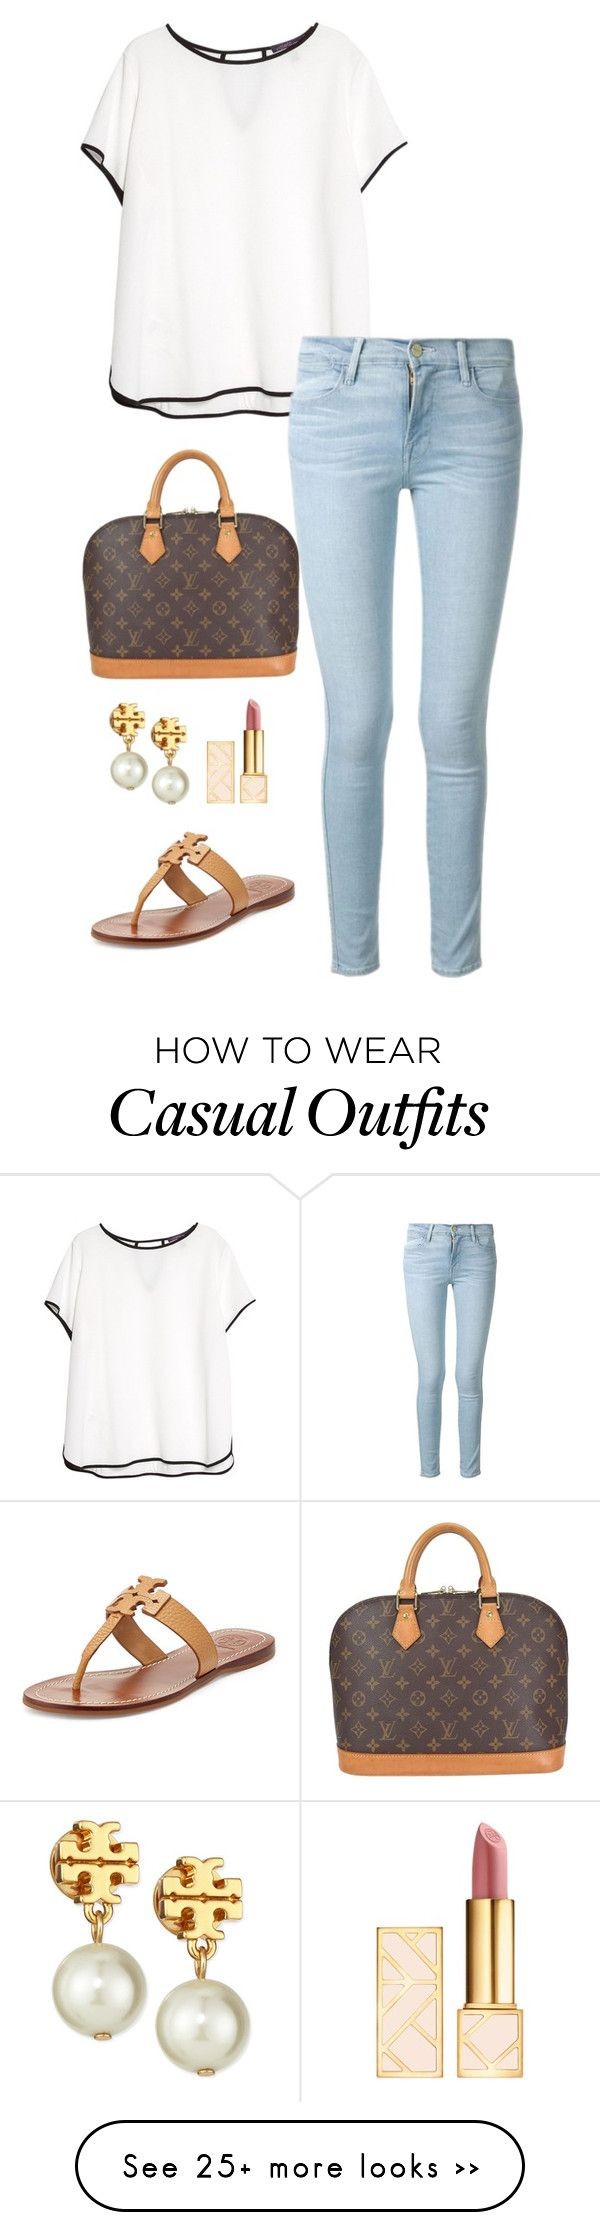 """""""casual day"""" by kcunningham1 on Polyvore featuring Violeta by Mango, Frame Denim, Louis Vuitton and Tory Burch"""